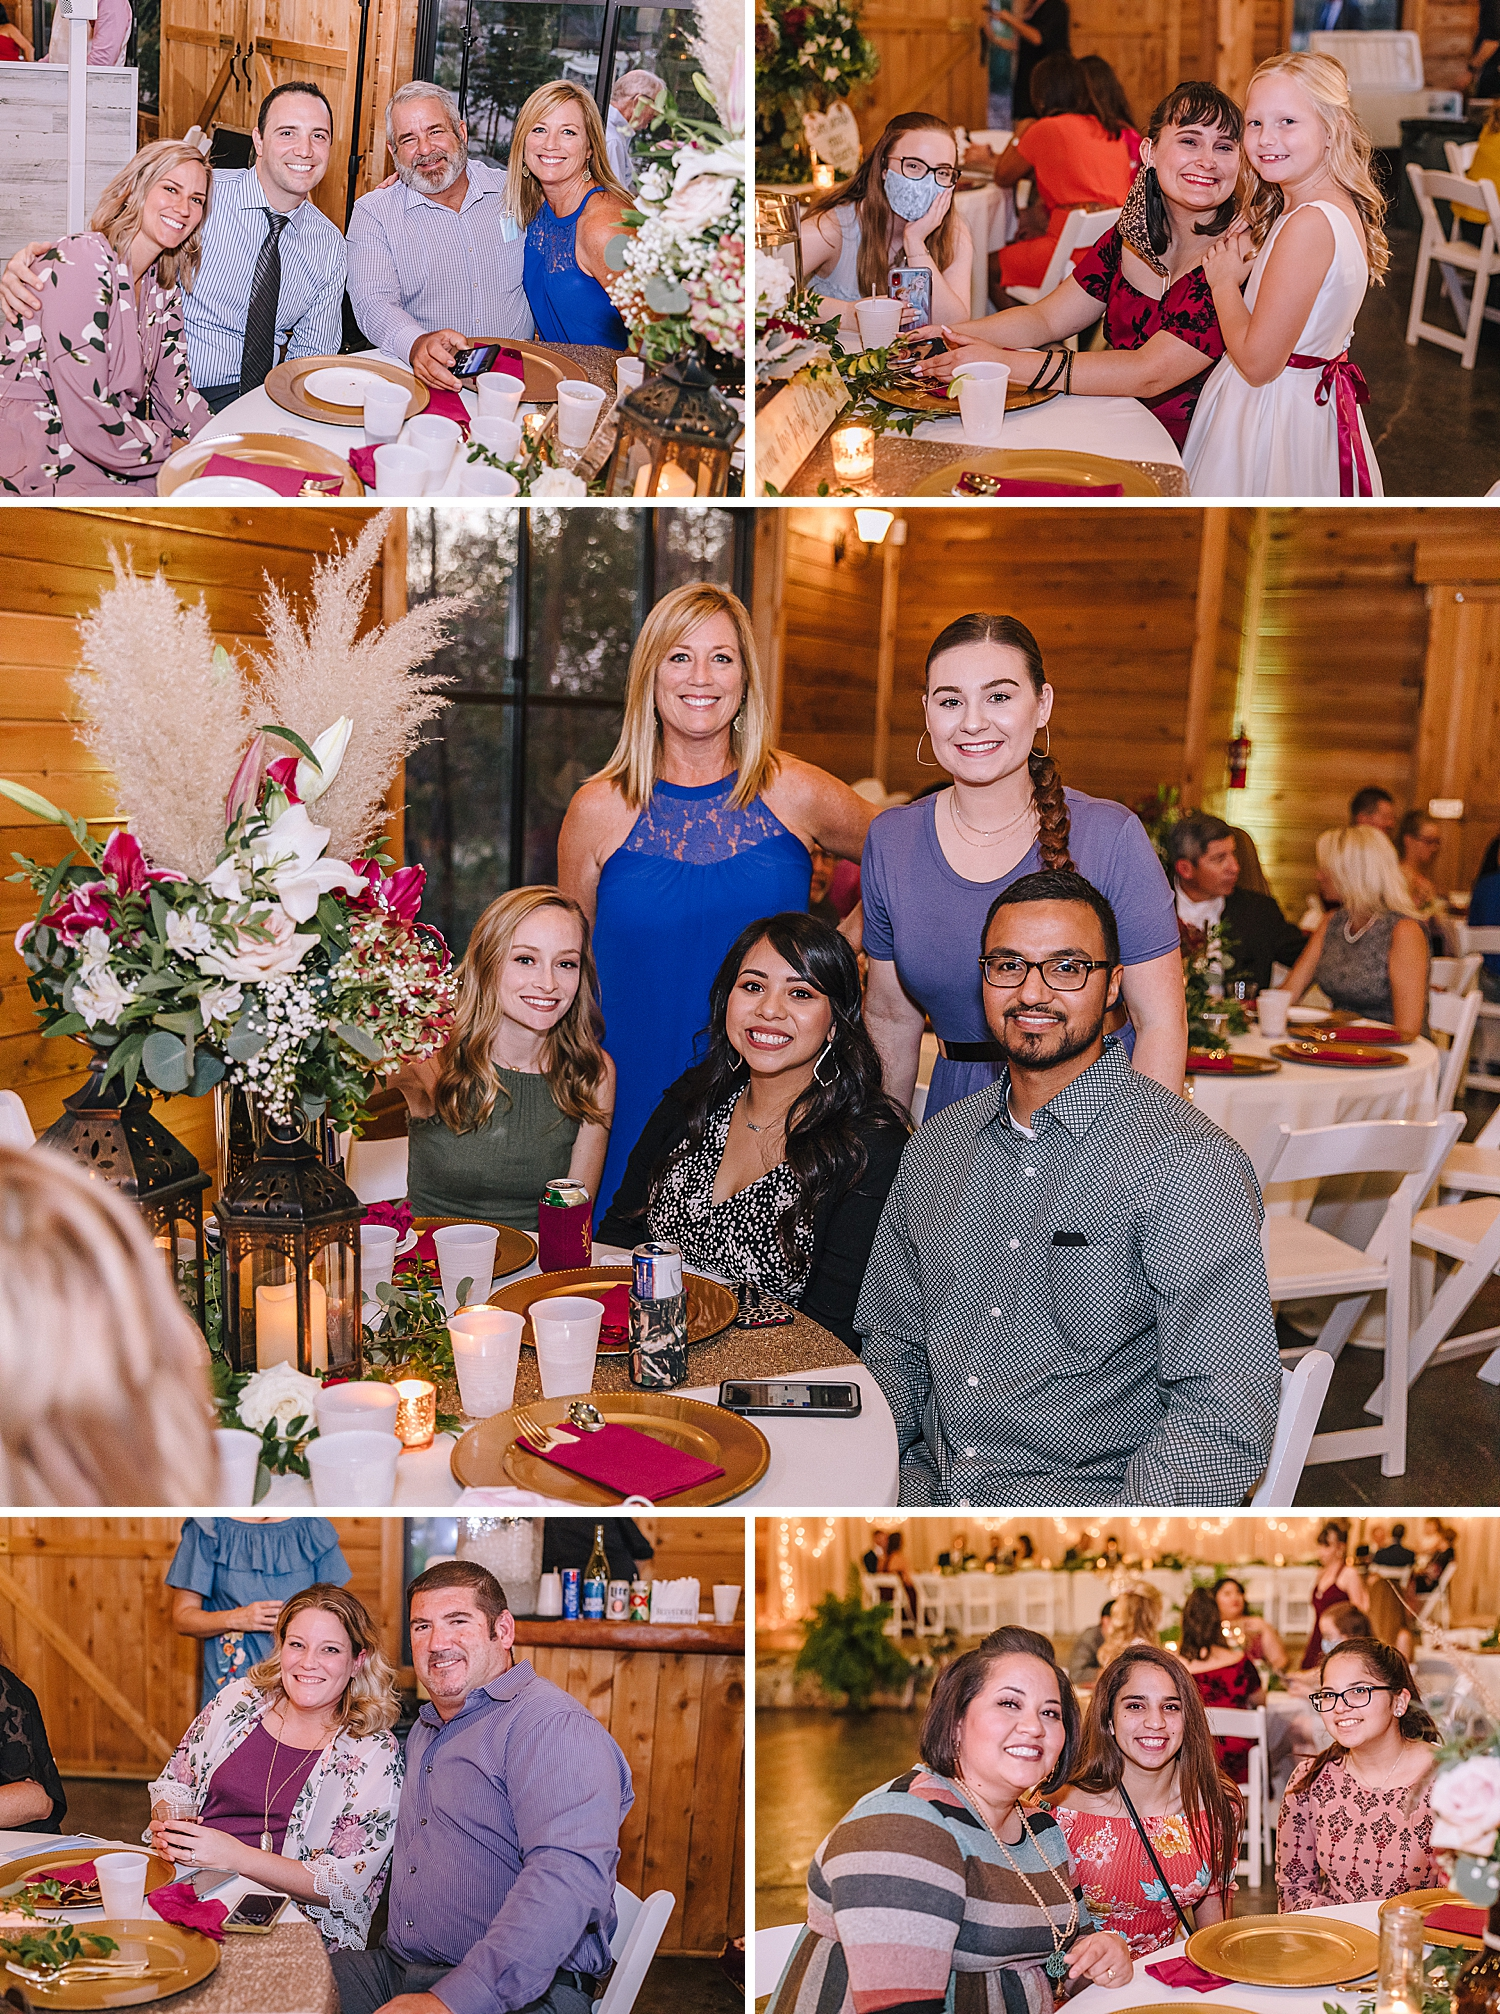 Geronimo-Oaks-Wedding-Venue-Seguin-Texas-Elegant-Navy-Burgundy-Wedding-Carly-Barton-Photography_0064.jpg